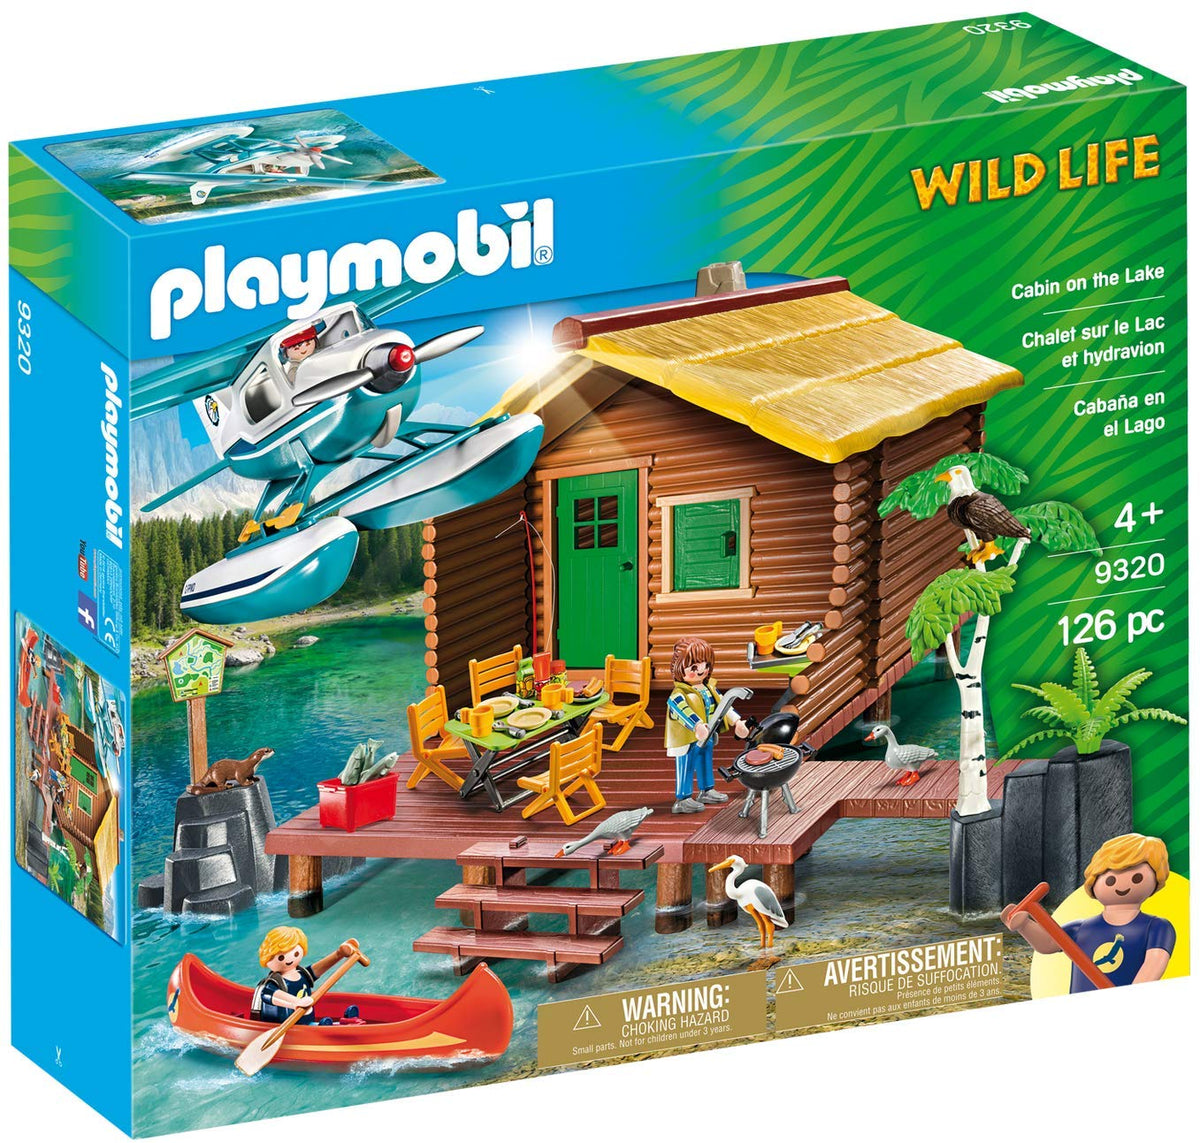 Playmobil 9320 Wild Life Cabin On The Lake